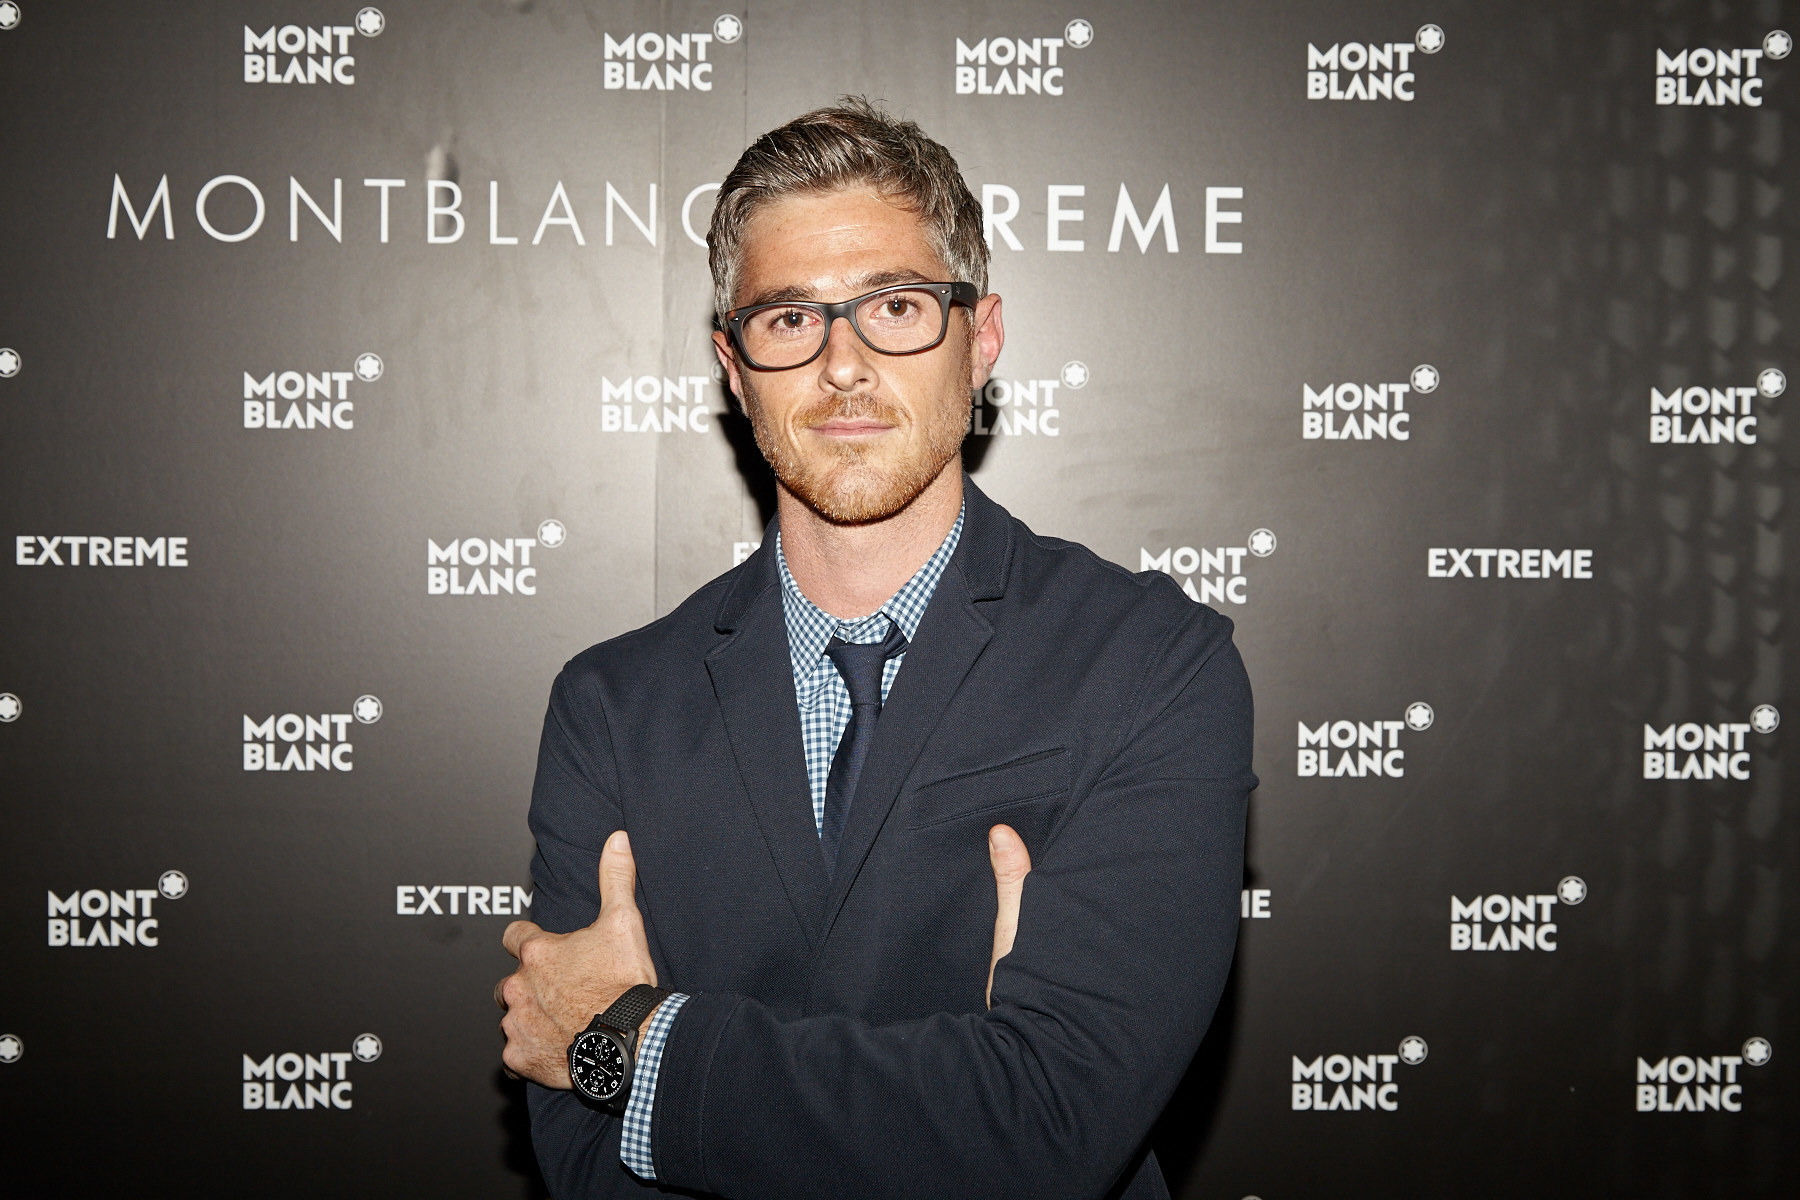 ATLANTA, GA - SEPTEMBER 25:  Dave Annable attends the Montblanc celebration for the grand re-opening of the Atlanta Boutique with Kat Graham, Dave Annable and Kristen Ledlow September 25, 2014 in Atlanta, Georgia.  (Photo by Craig Bromley/Getty Images for Montblanc)